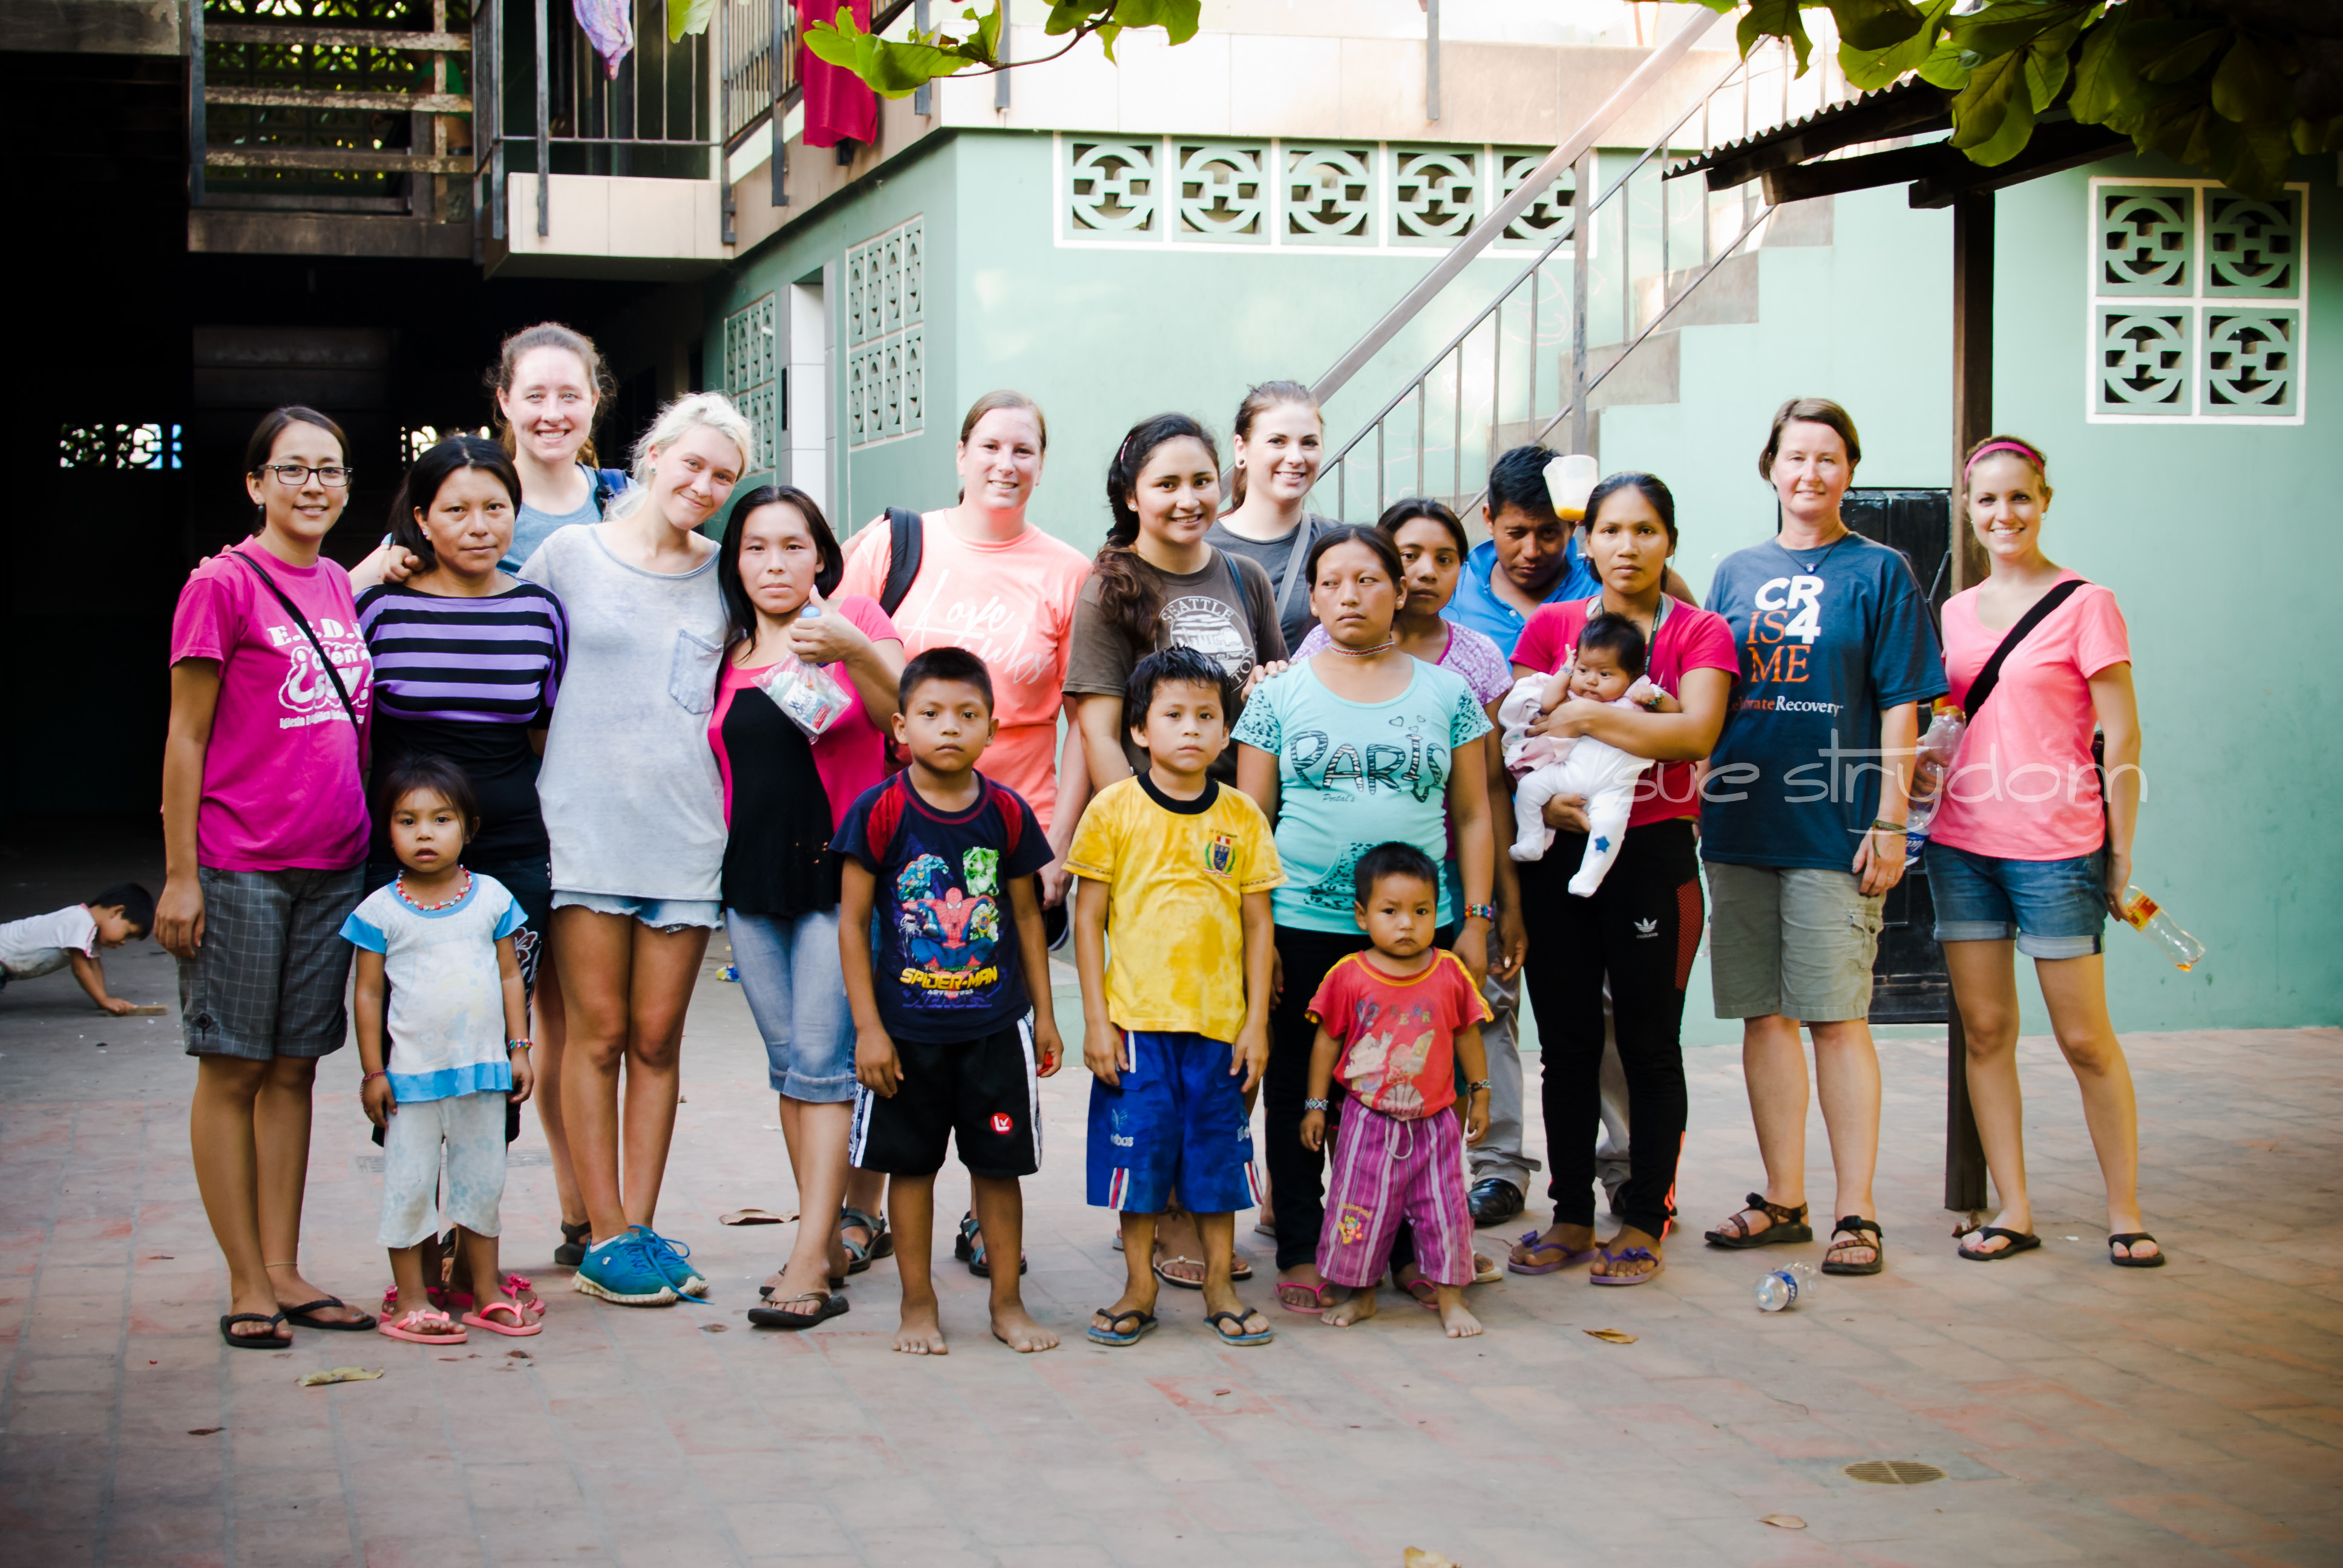 Our US chicas with some of the moms and kids.